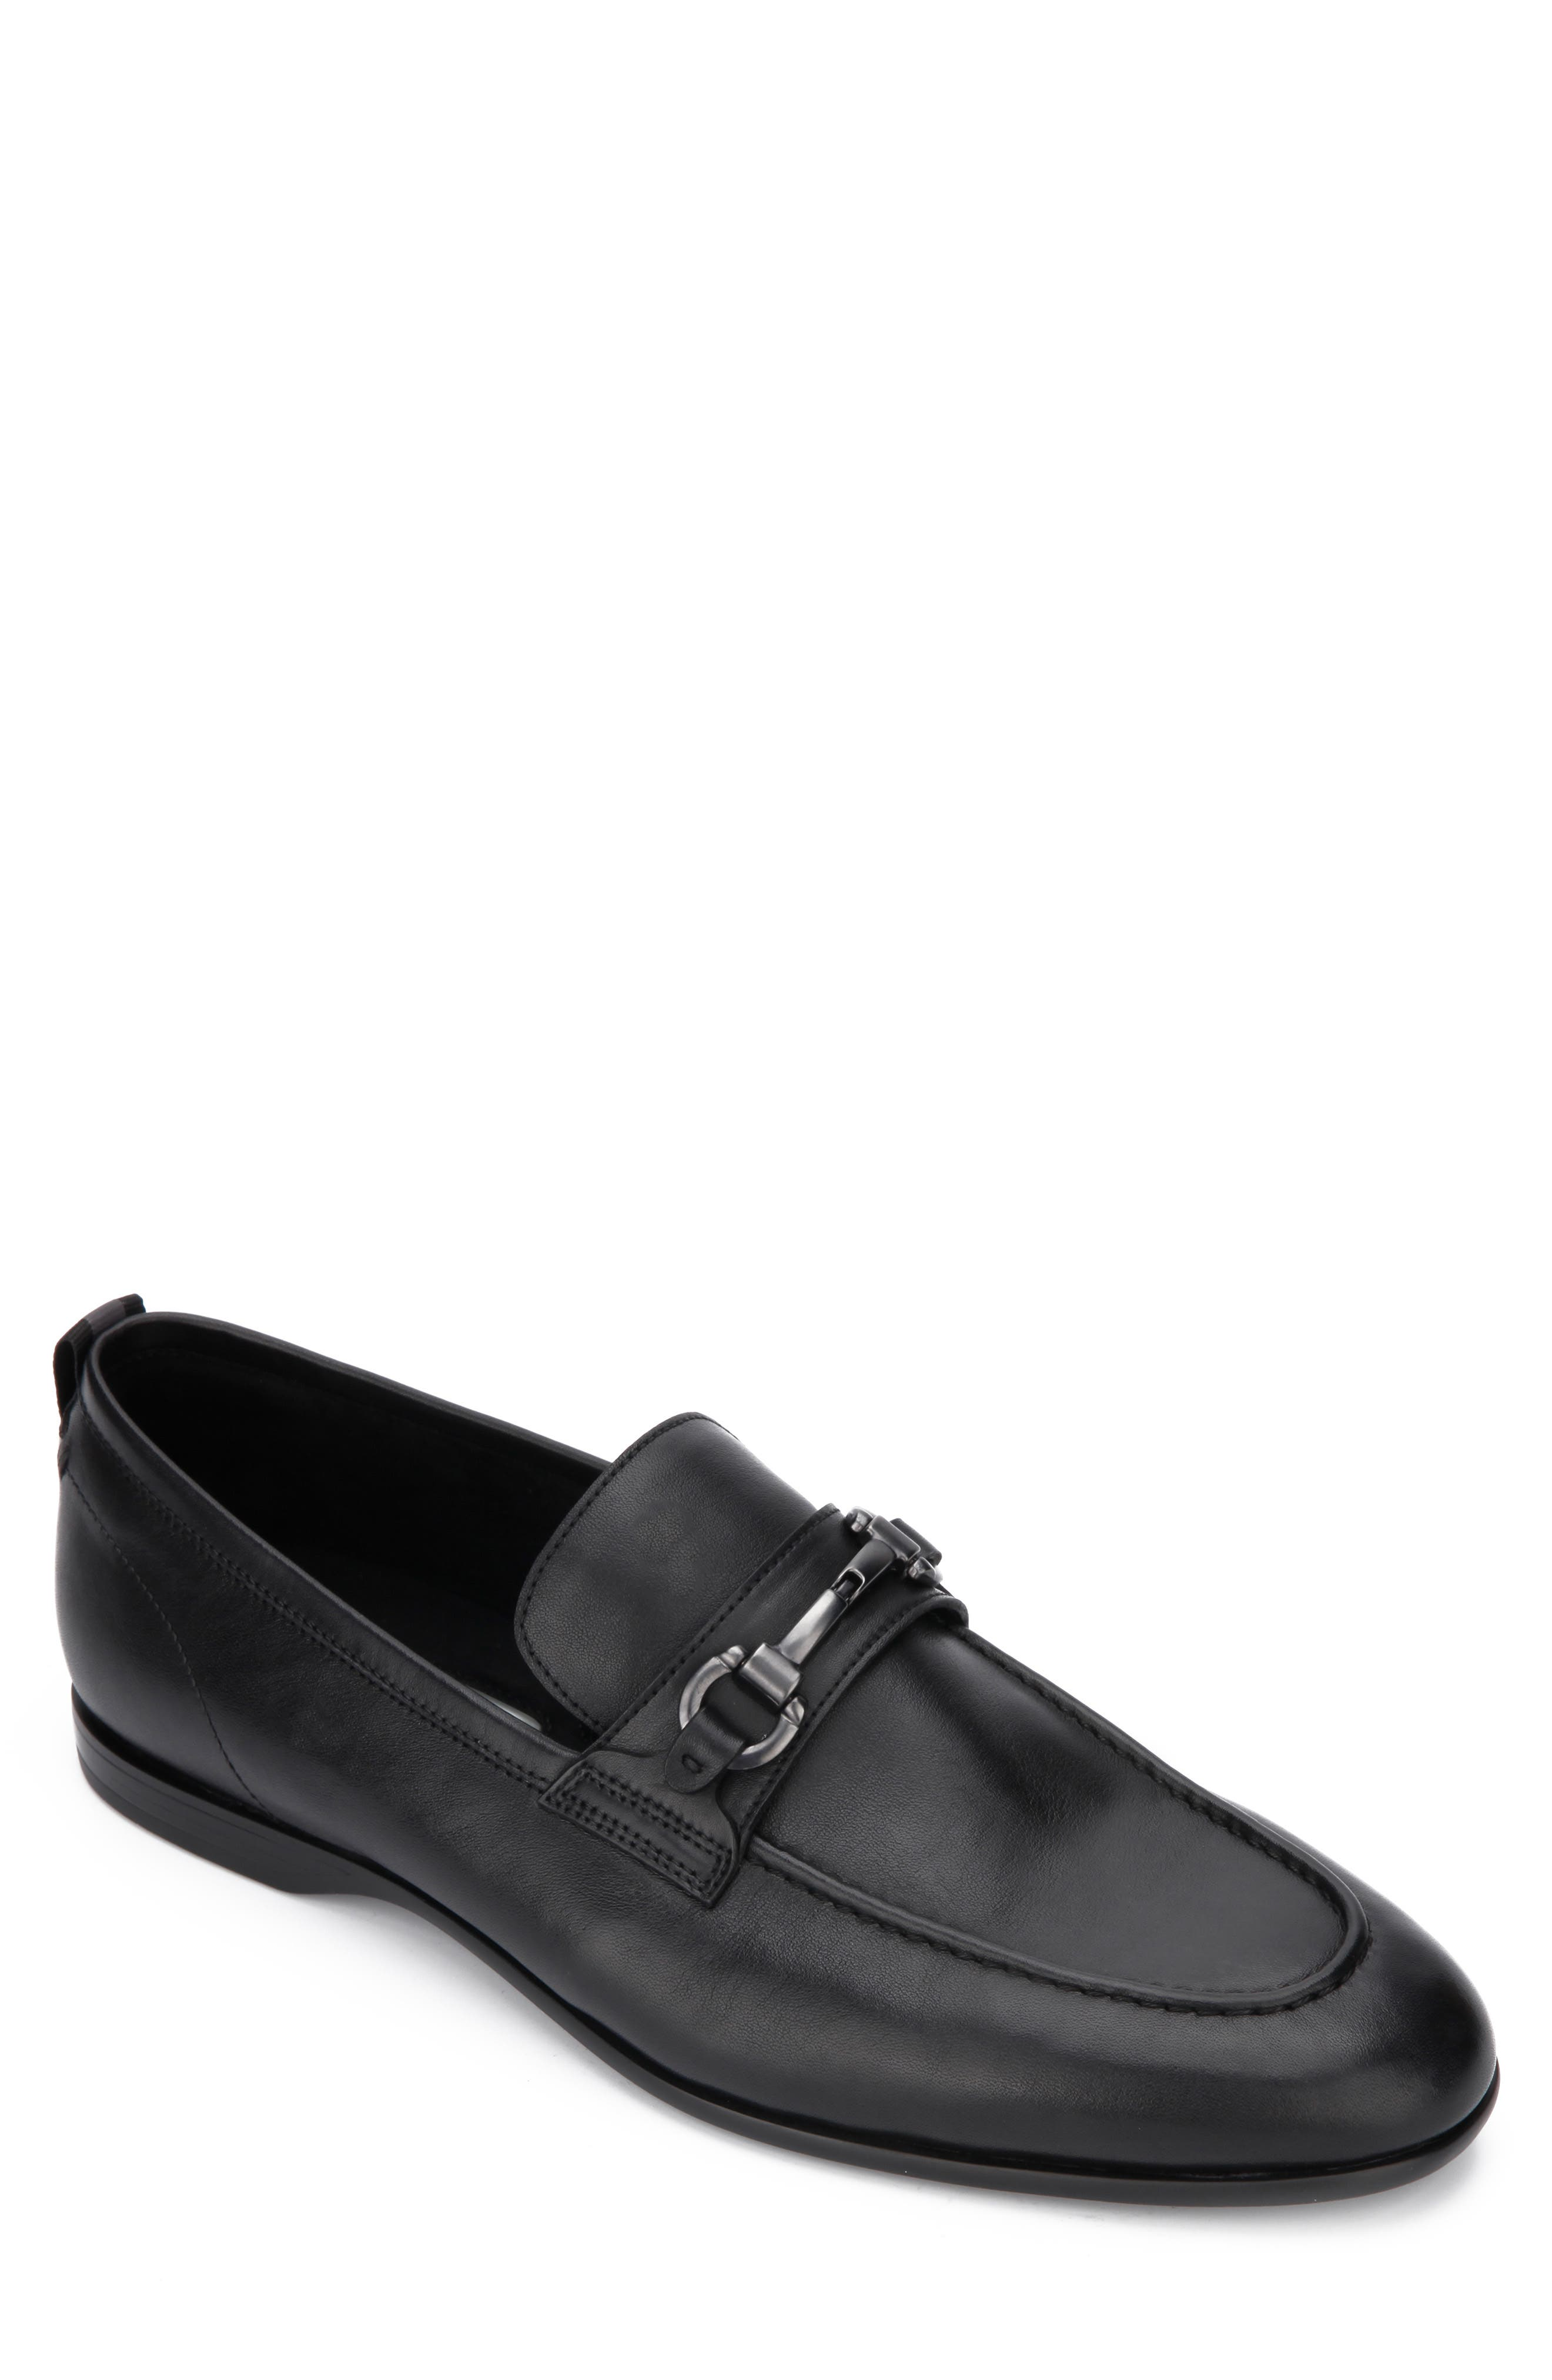 A brushed-metal bit tops a handsome loafer crafted with Rebound System technology for superior comfort. Style Name: Kenneth Cole New York Nolan Bit Loafer (Men). Style Number: 5977675 2. Available in stores.